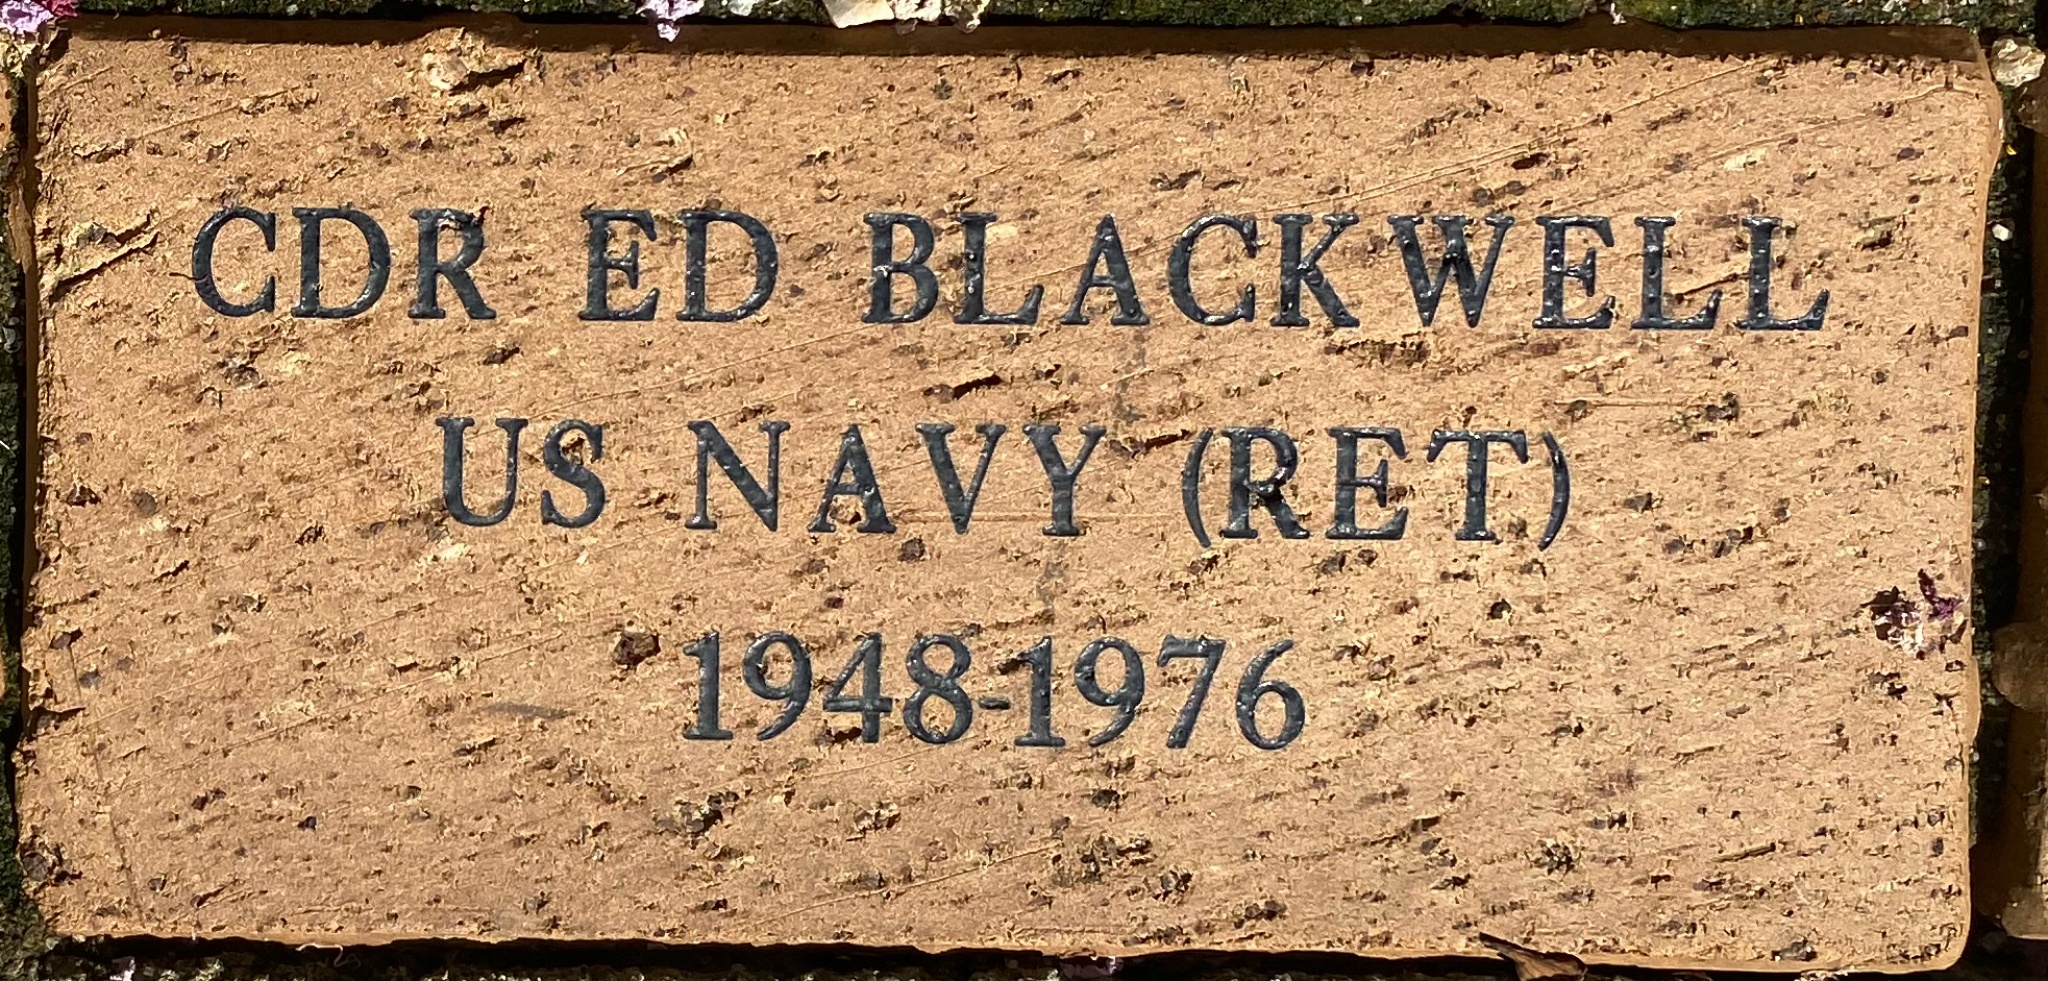 CDR ED BLACKWELL US NAVY (RET) 1948-1976